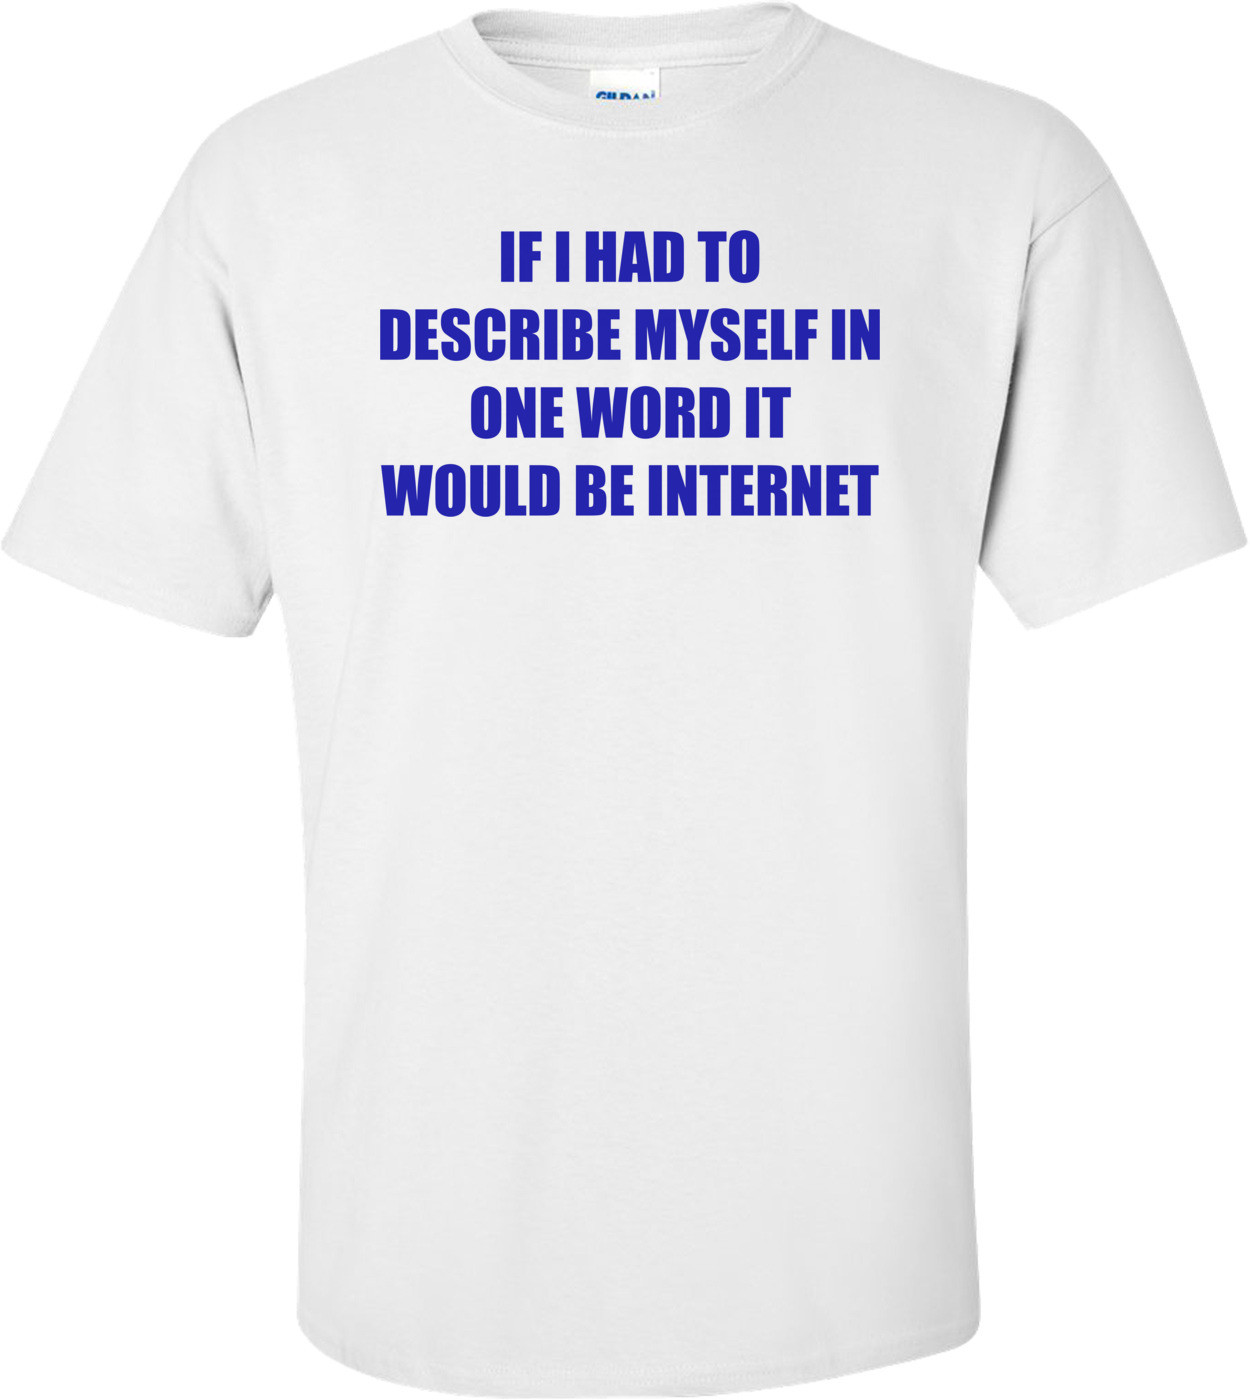 IF I HAD TO DESCRIBE MYSELF IN ONE WORD IT WOULD BE INTERNET Shirt